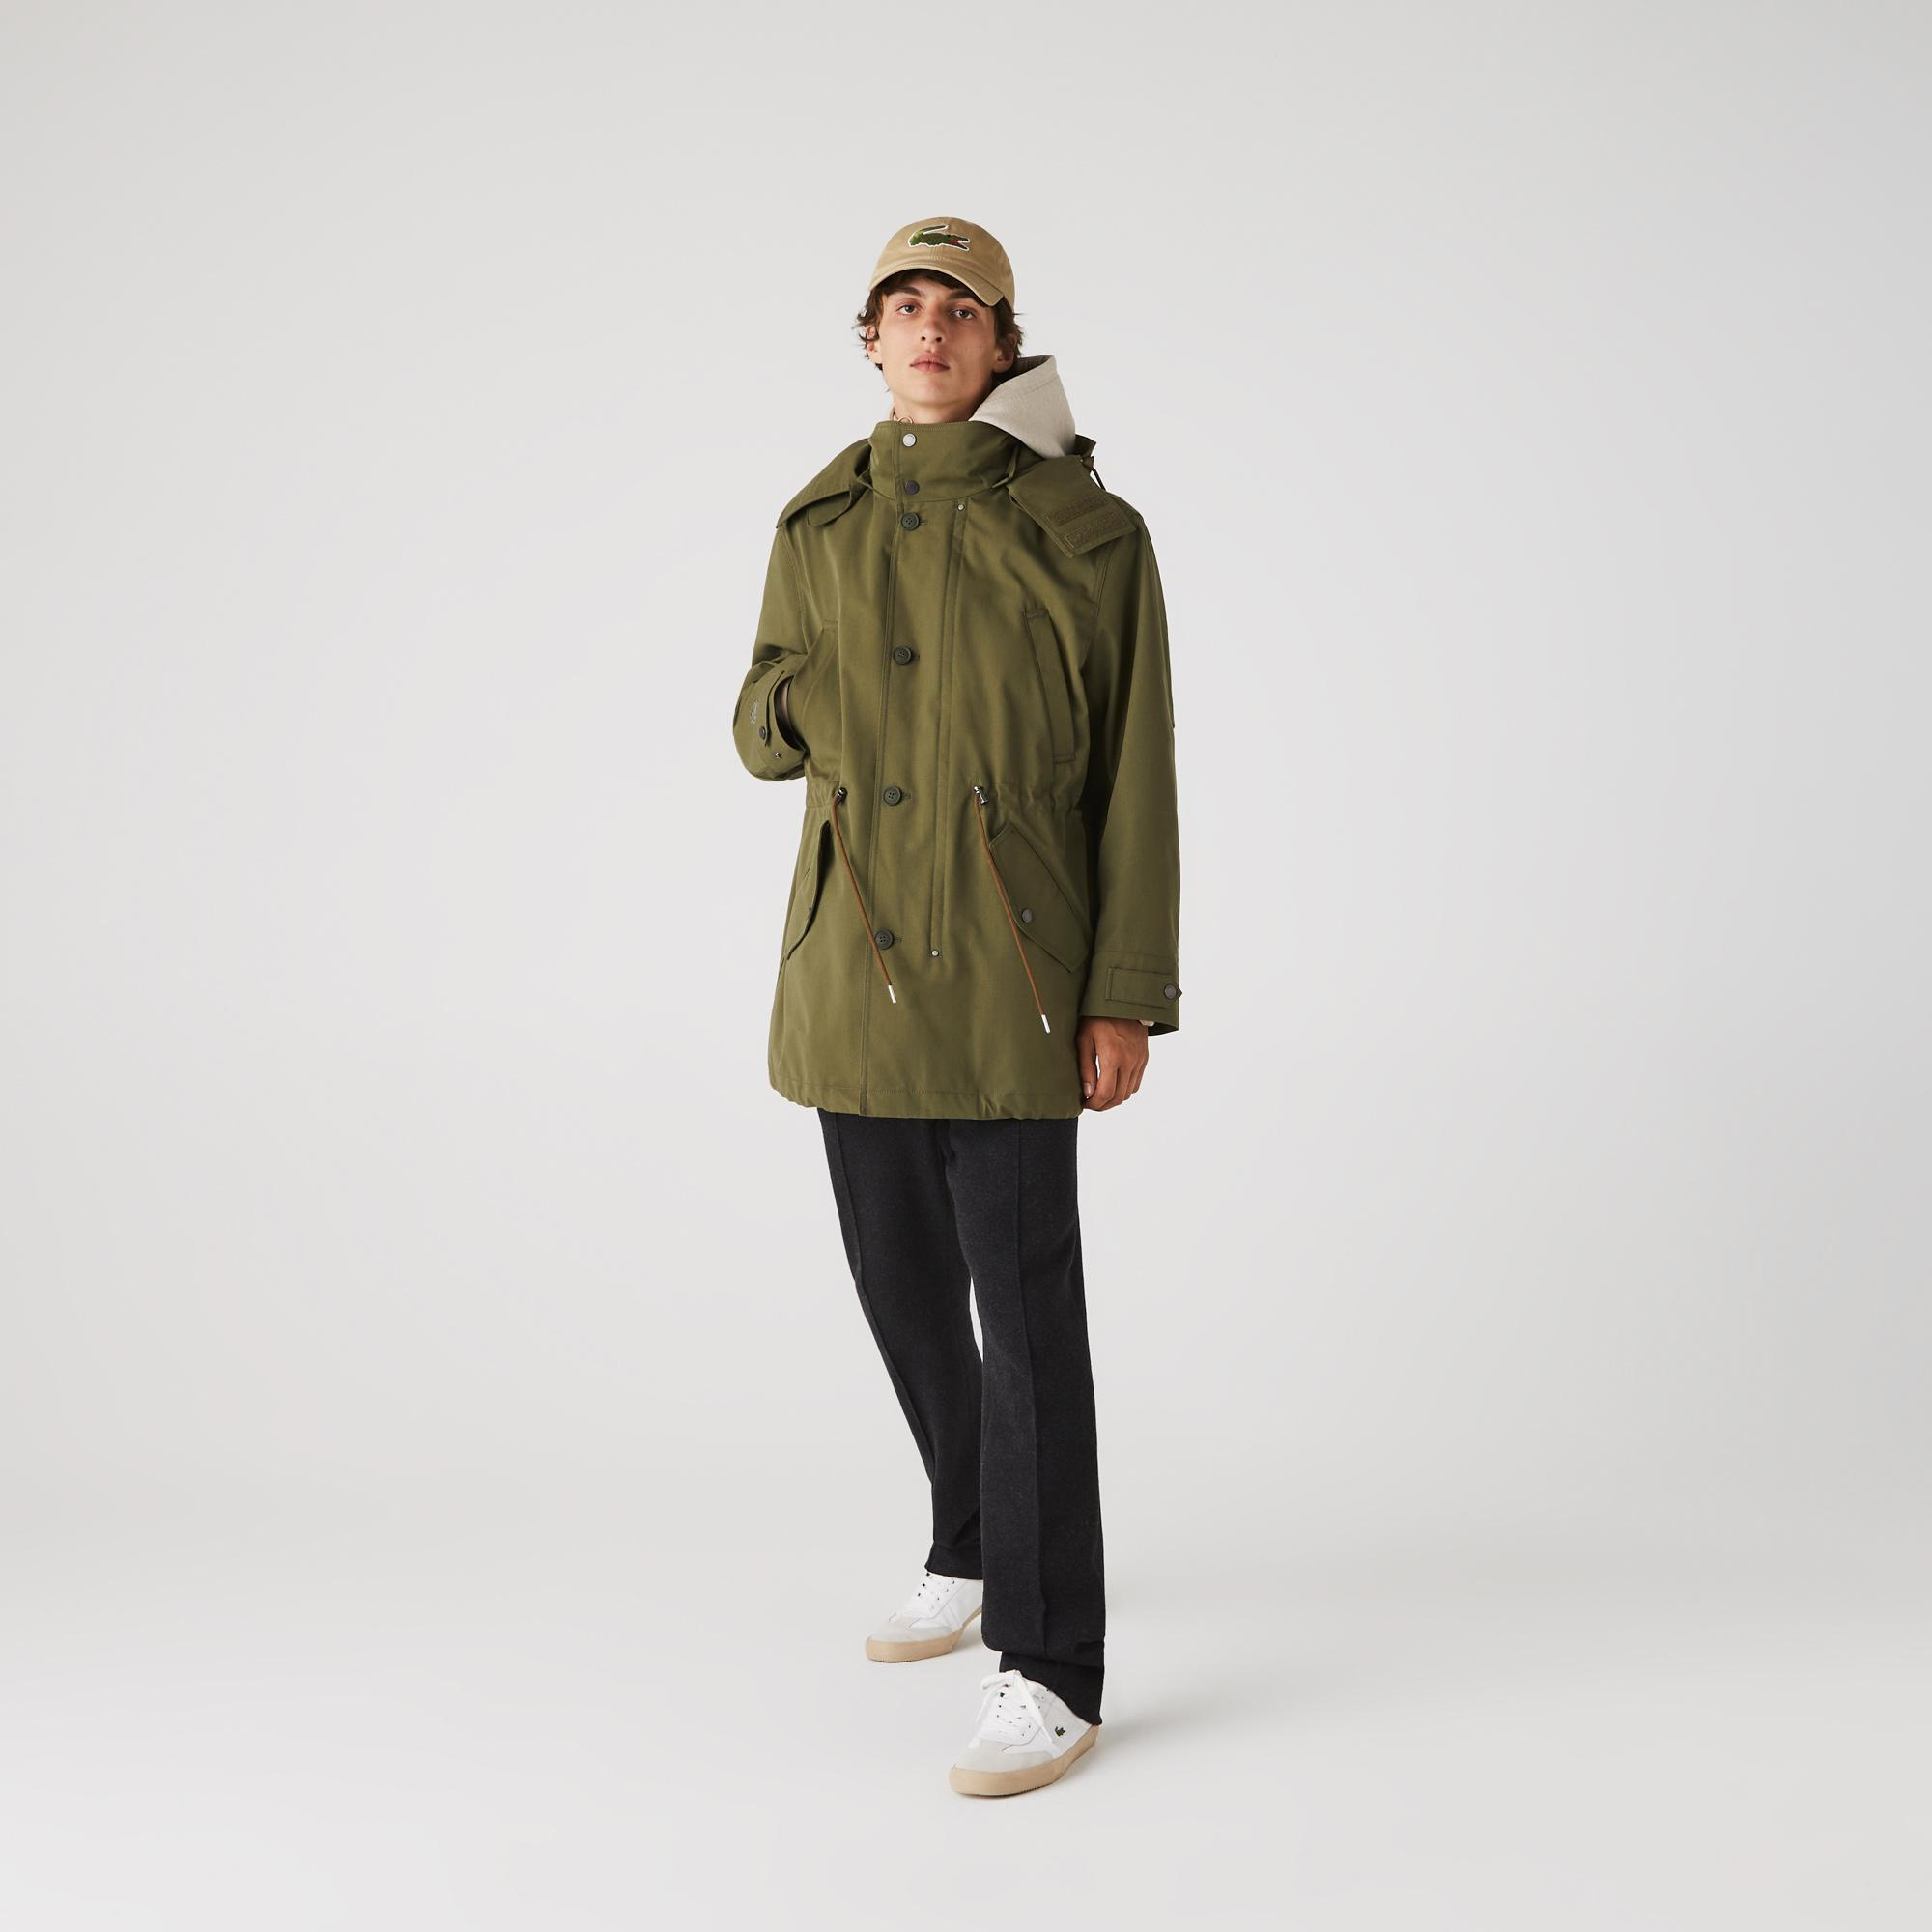 Lacoste Men's Quilted Interior Jacket Water-Resistant 3-in-1 Parka